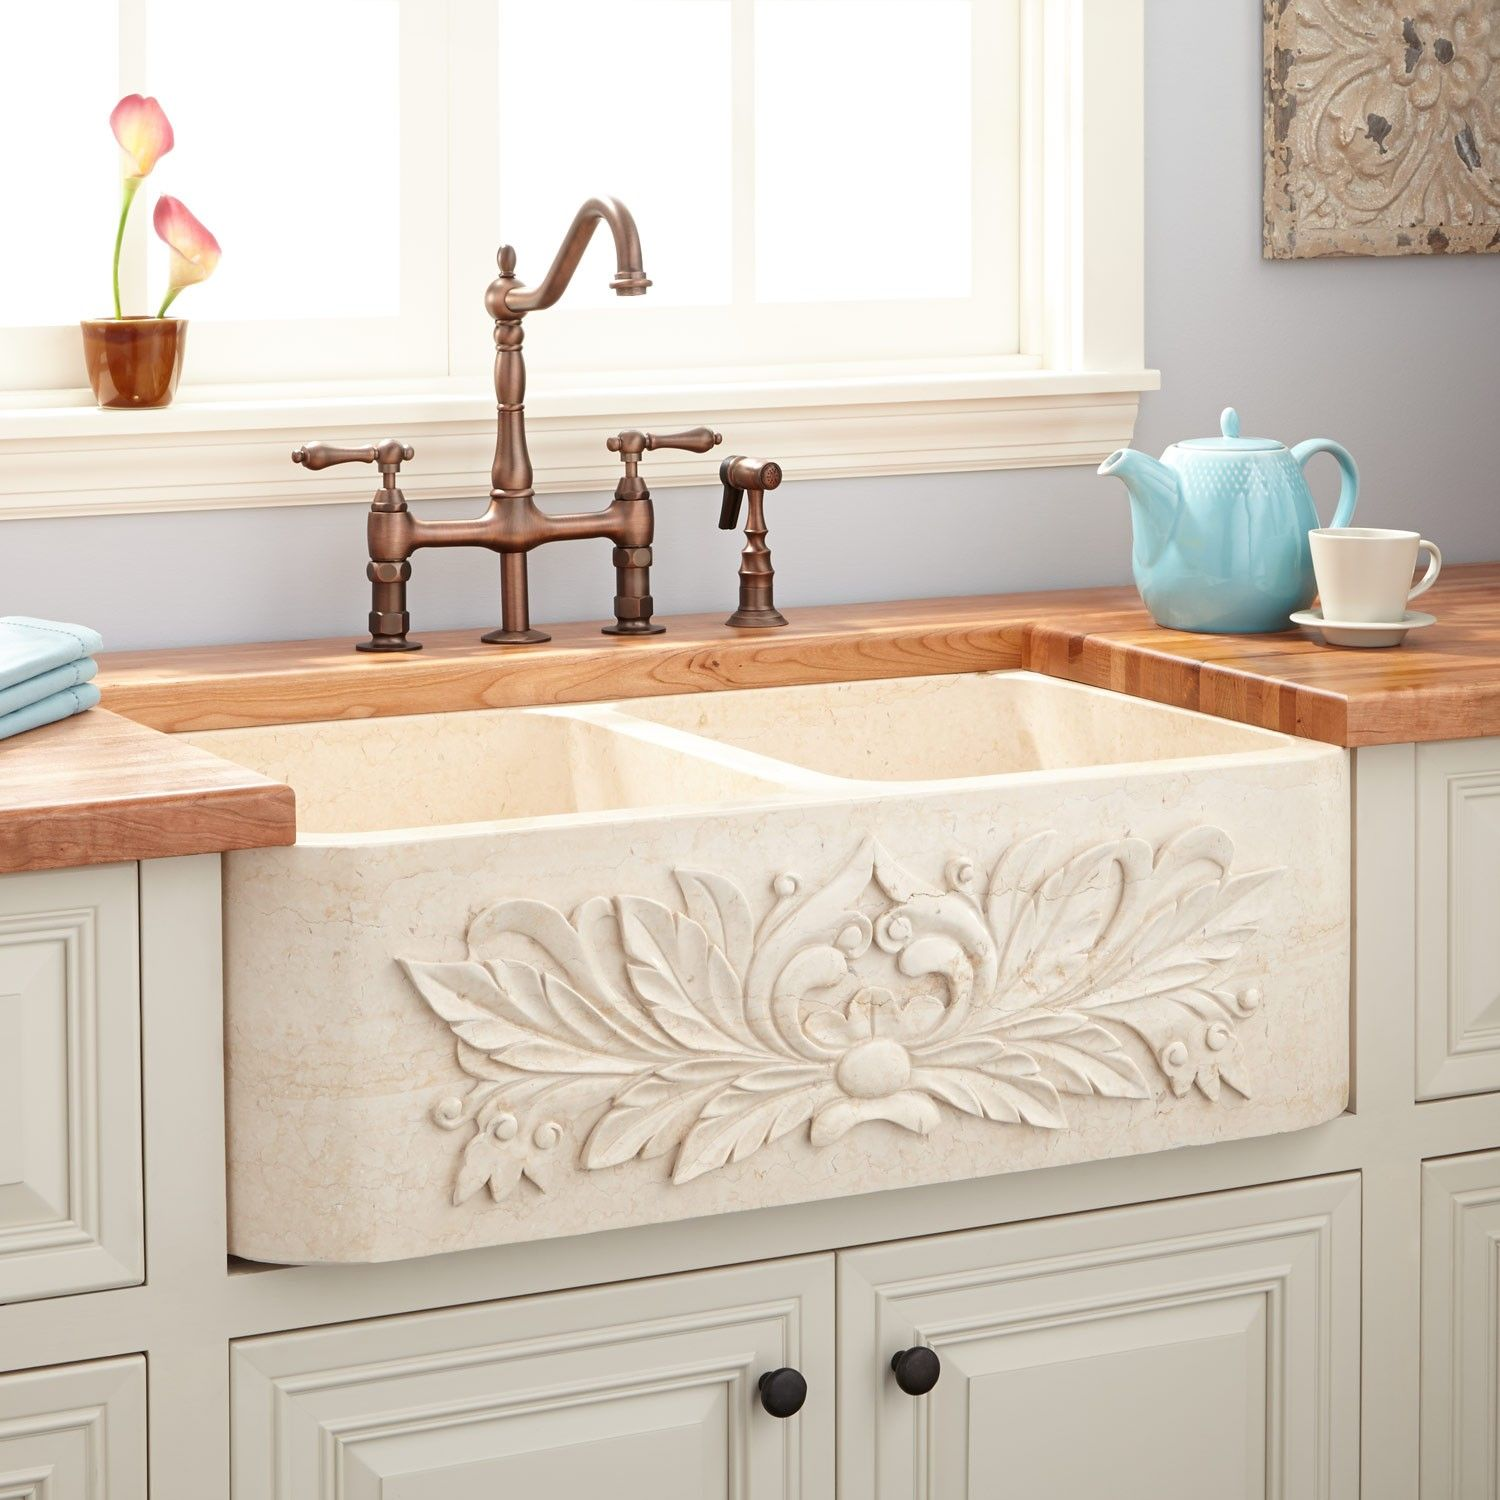 36 Ivy Polished Marble Double Bowl Farmhouse Sink In Cream Egyptian Signature Hardware Kitchen Sink Decor Farmhouse Sink Kitchen Modern Farmhouse Kitchens